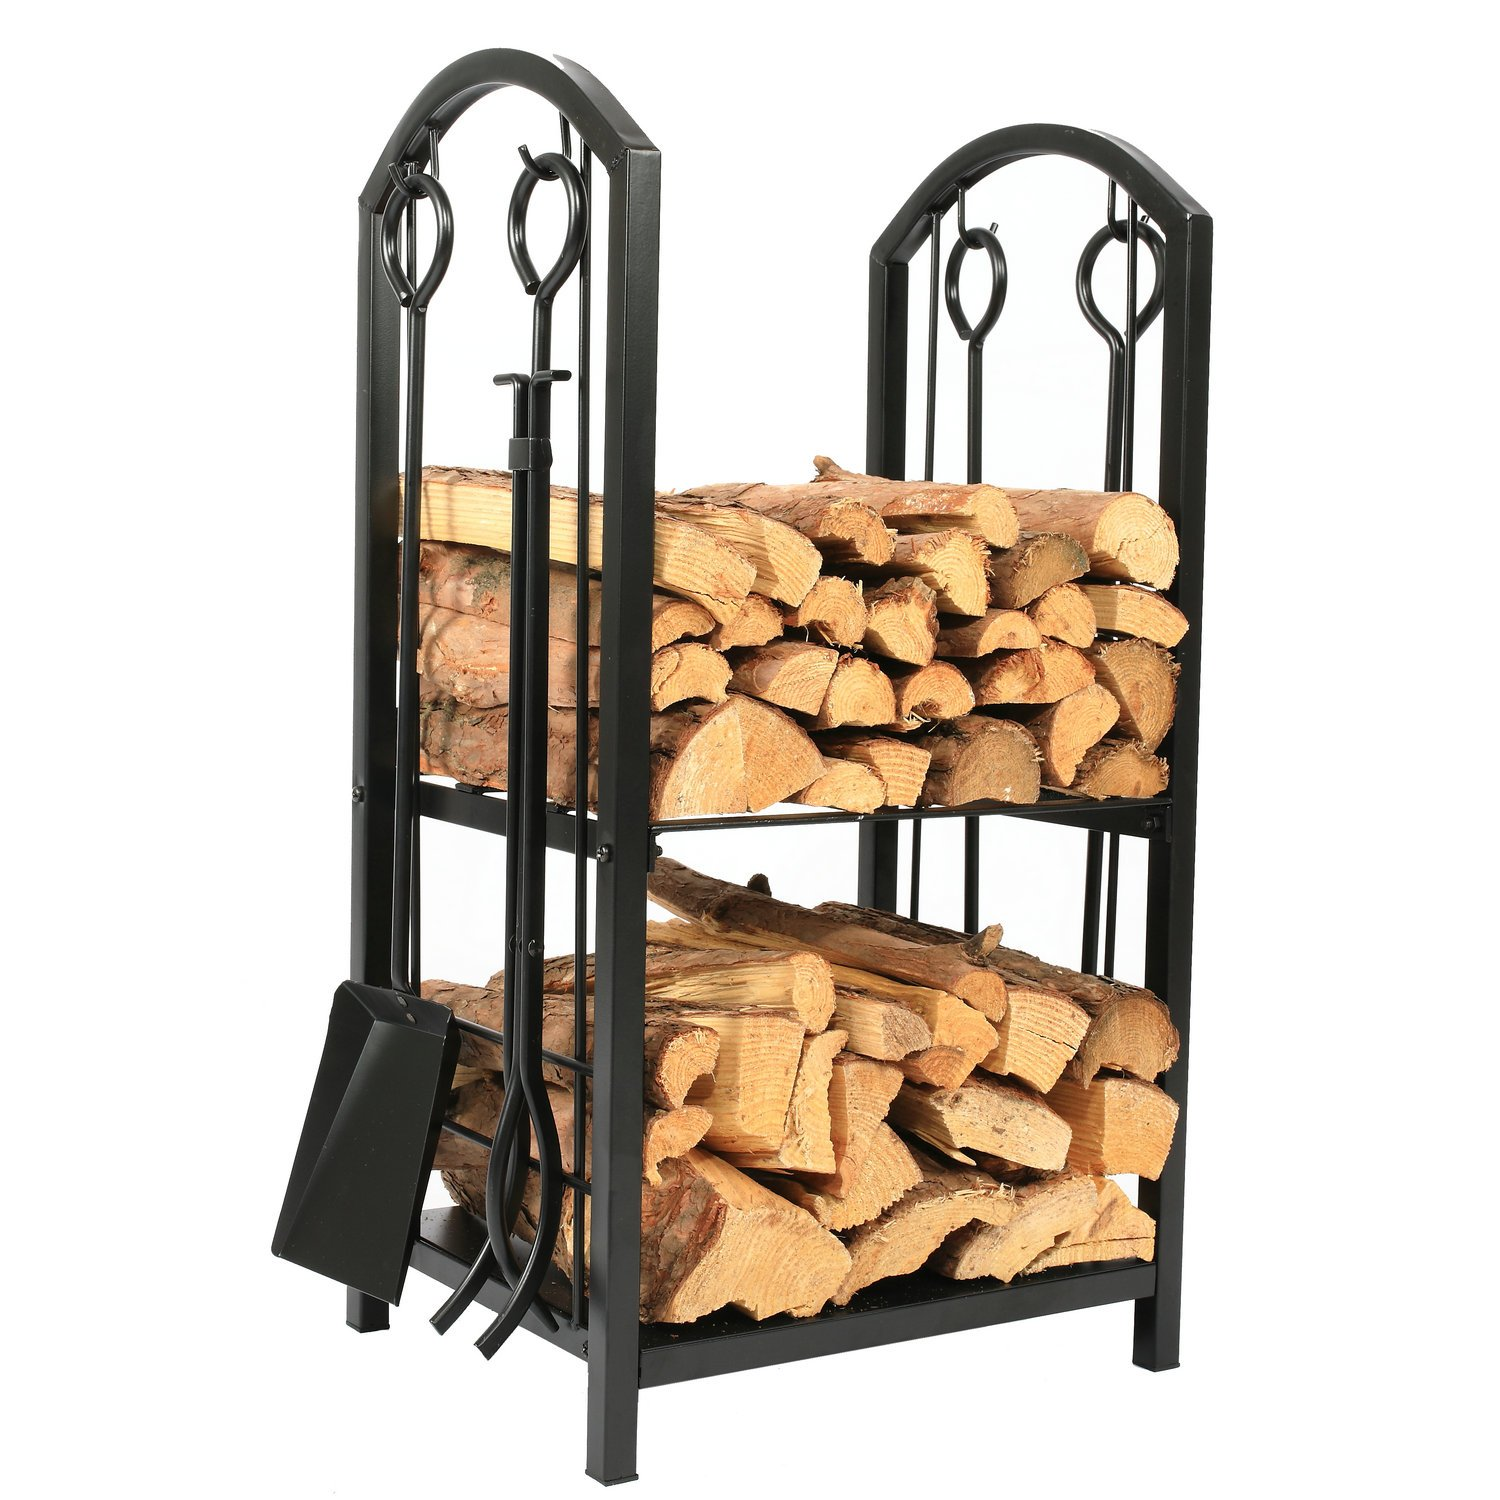 1.Go 18''Wide x 27.5''High Iron Firewood Log Rack with Fireplace Tool Set